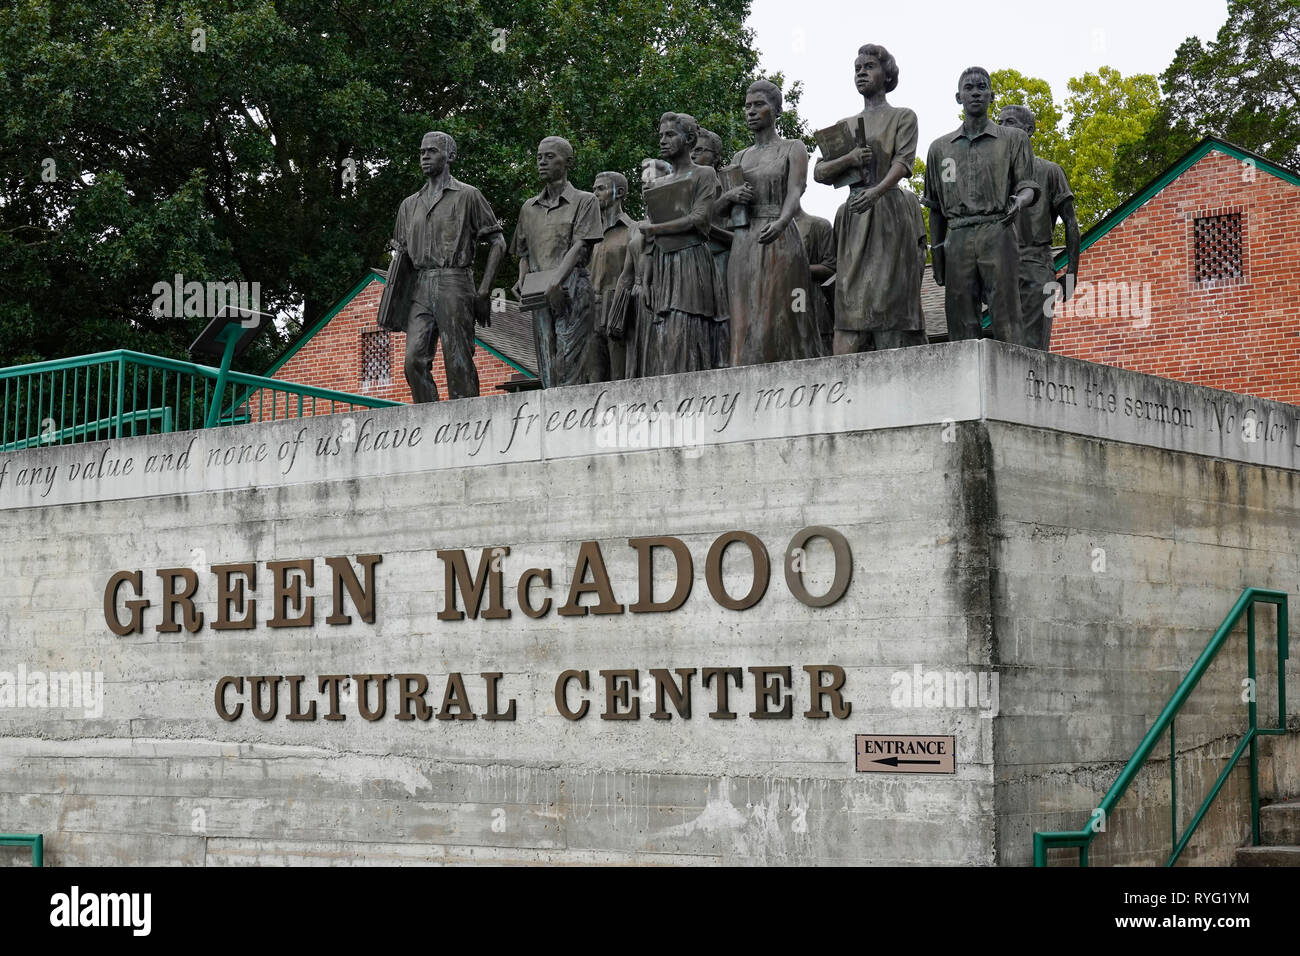 Green McAdoo cultural center Clinton Tennessee - Stock Image